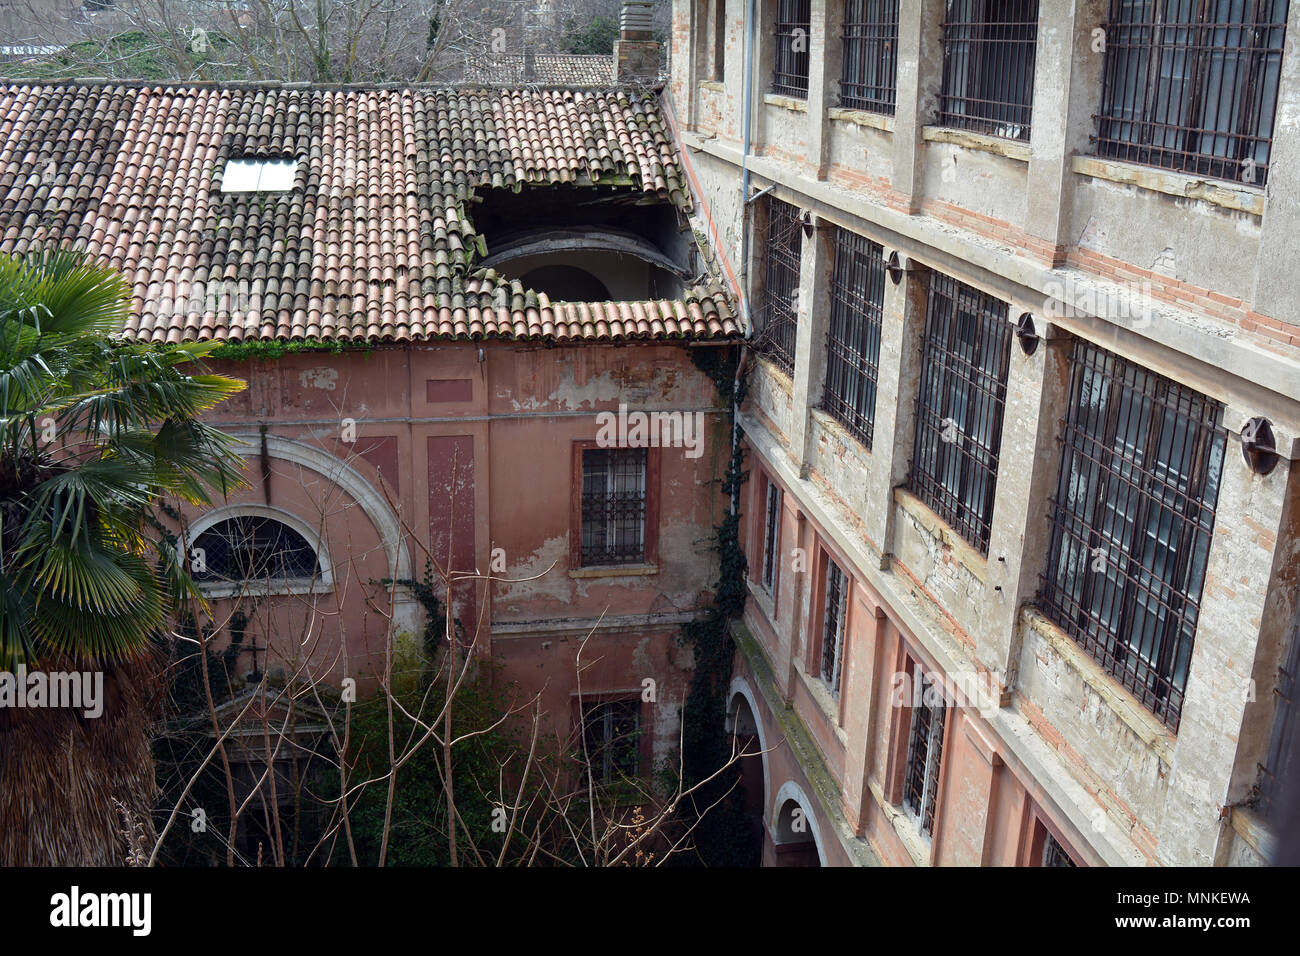 Looking at Hole in Roof of Abandoned Italian Psychiatric Hospital Building from Upper Floor - Stock Image